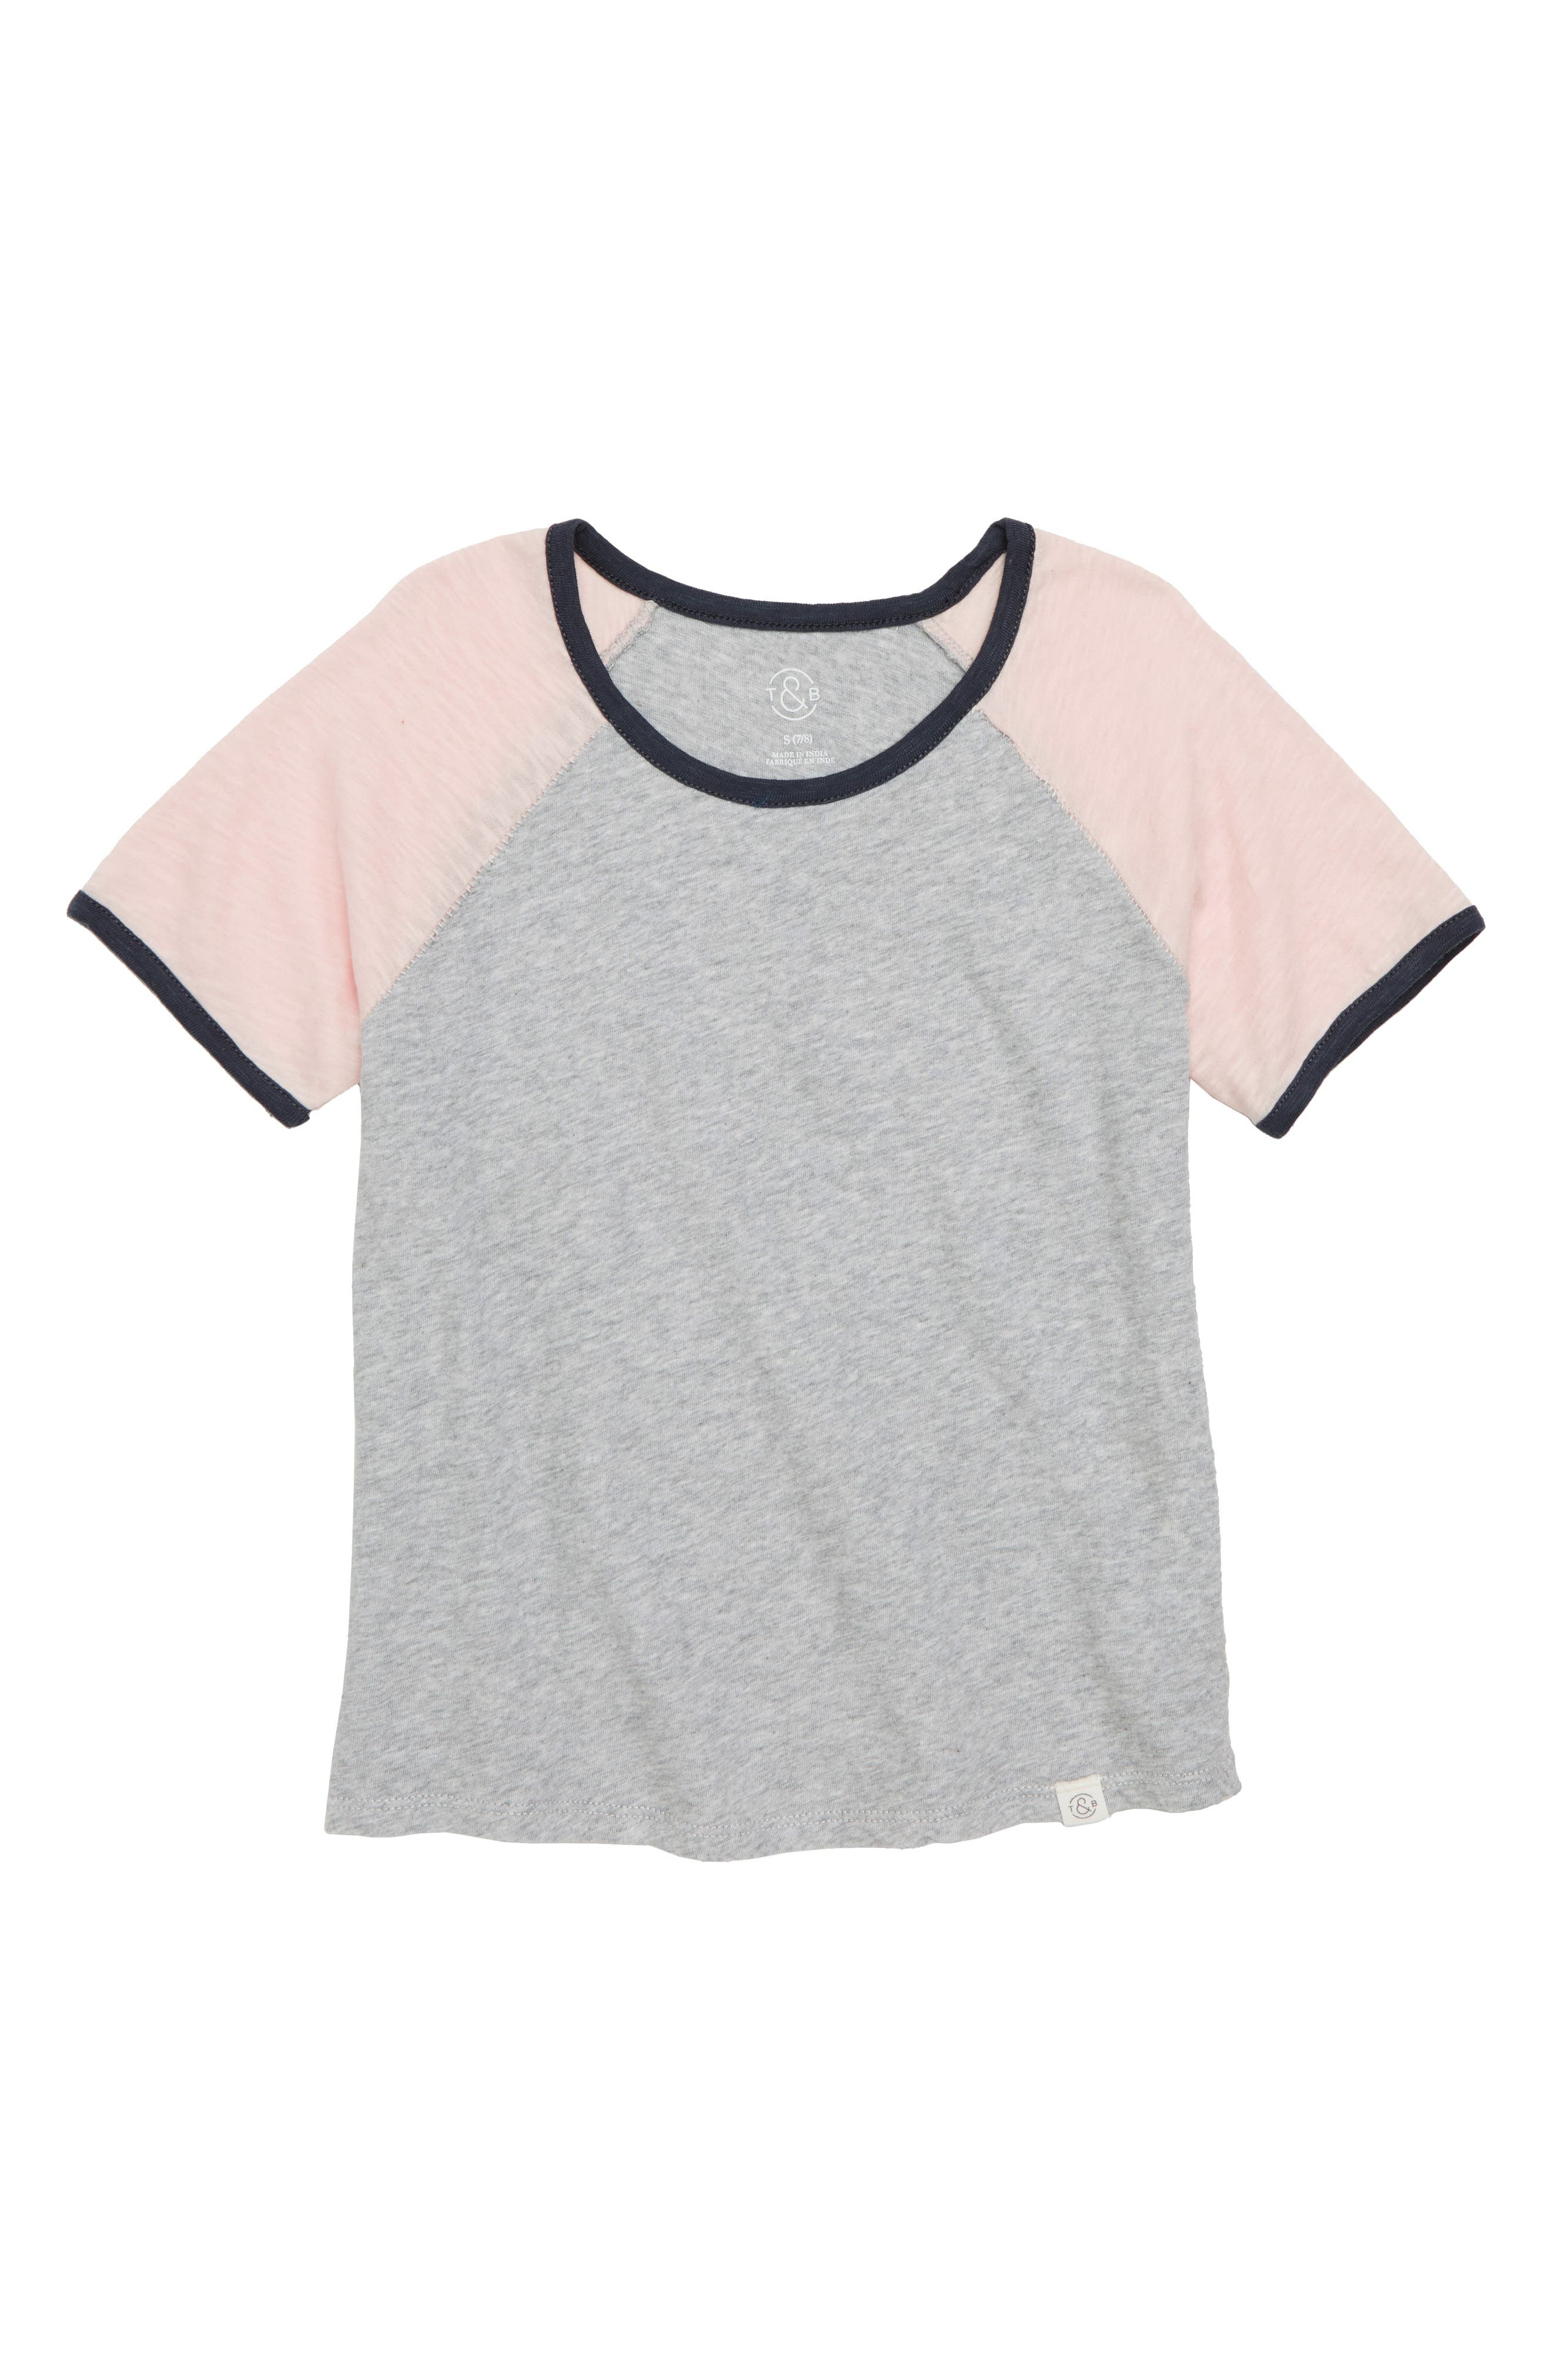 Colorblock Ringer Tee,                         Main,                         color, 050